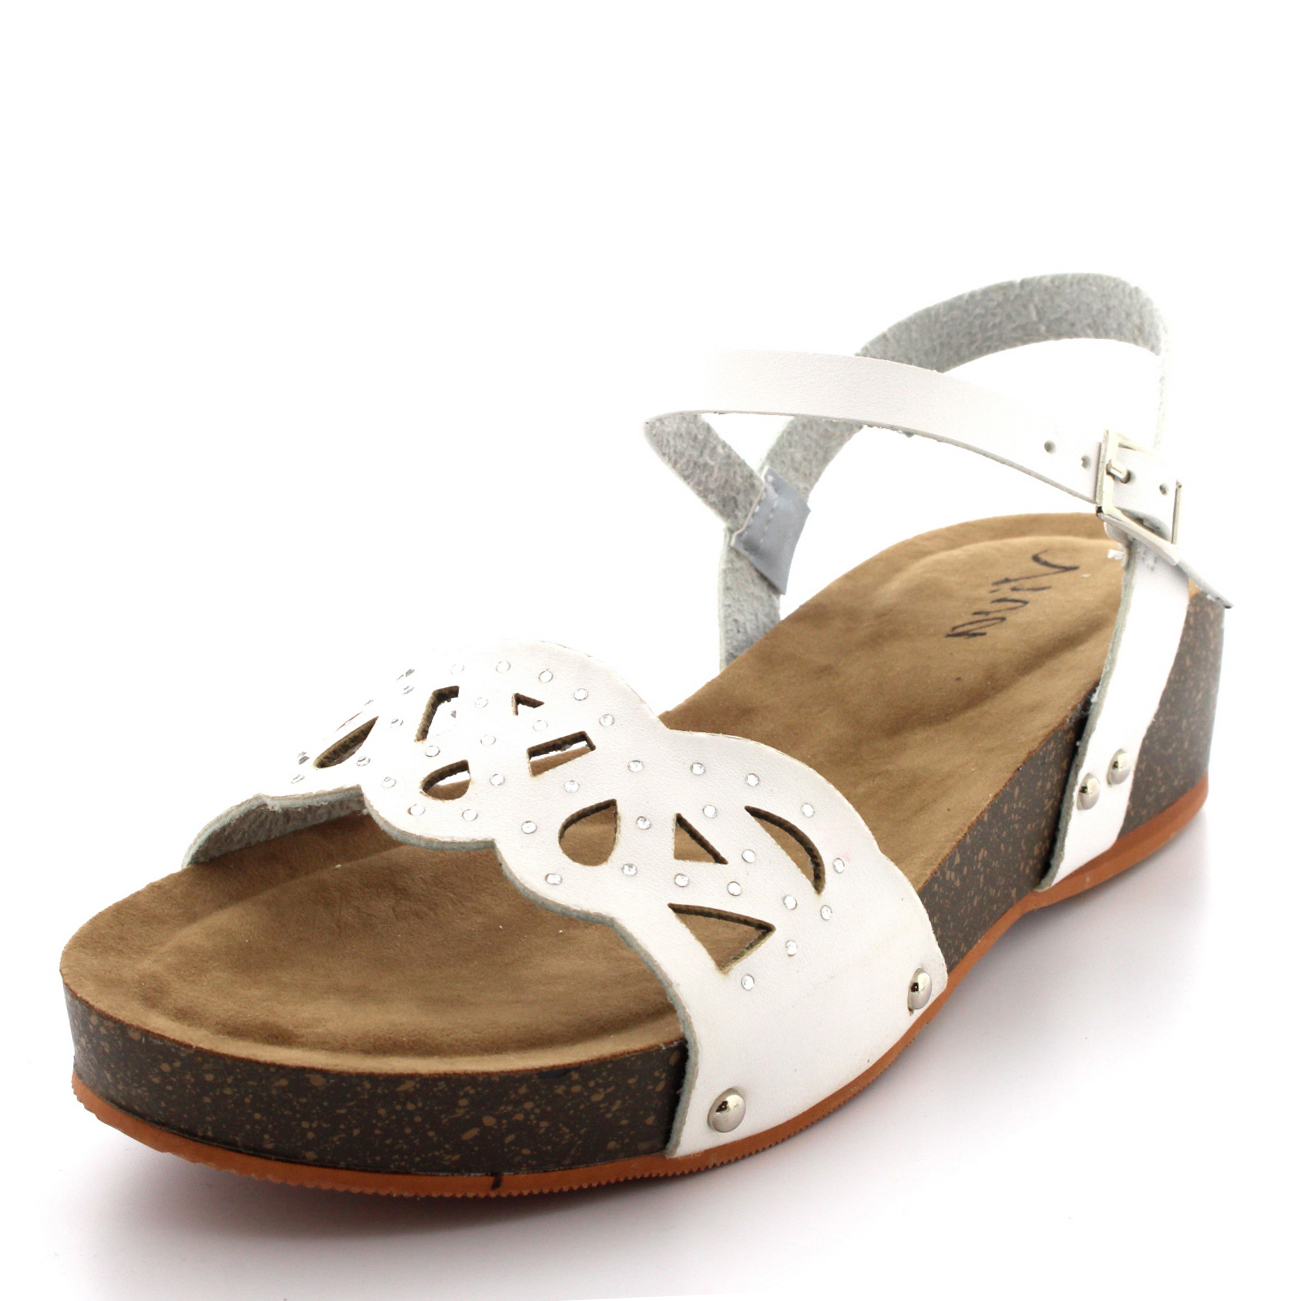 All Shoes () Home / Women / Shoes / All Shoes Women. Shoes All Shoes Running Lifestyle Training Walking Hiking & Trail Boots Tennis Softball Golf Lacrosse Work Shoes Sandals Wide Shoes Recently Reduced Shoes.